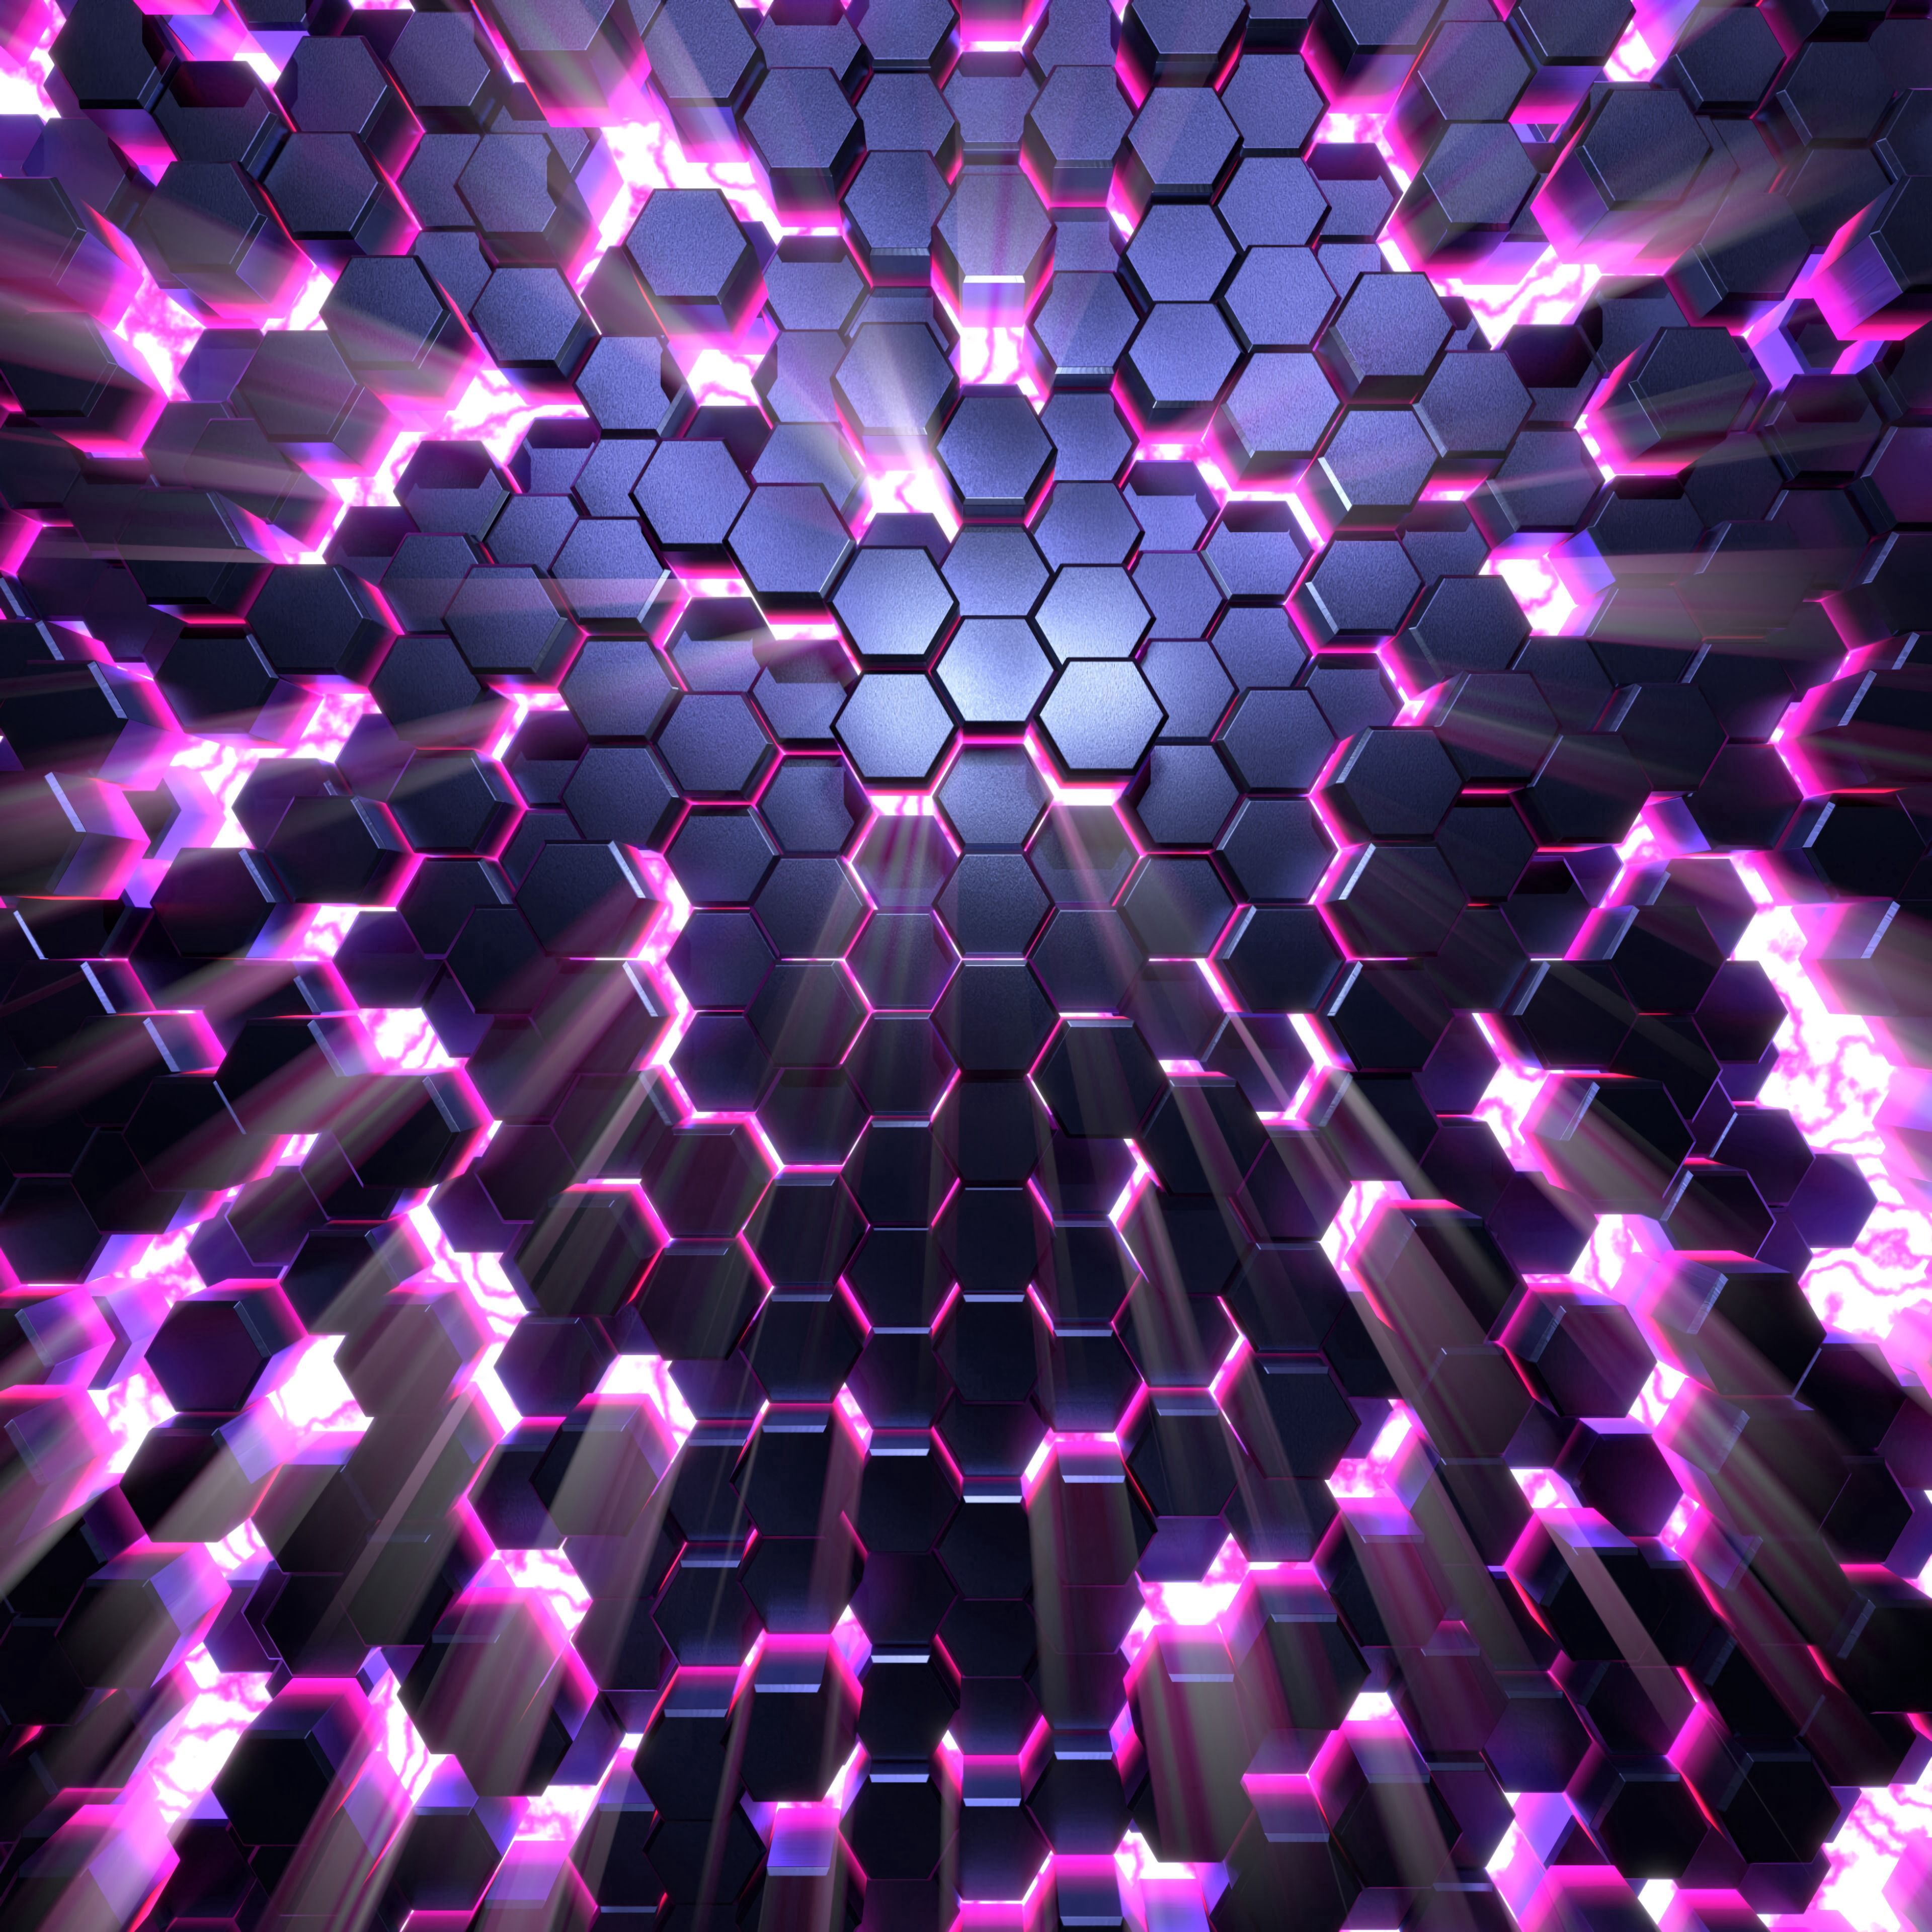 91330 download wallpaper 3D, Glow, Volume, Honeycomb screensavers and pictures for free